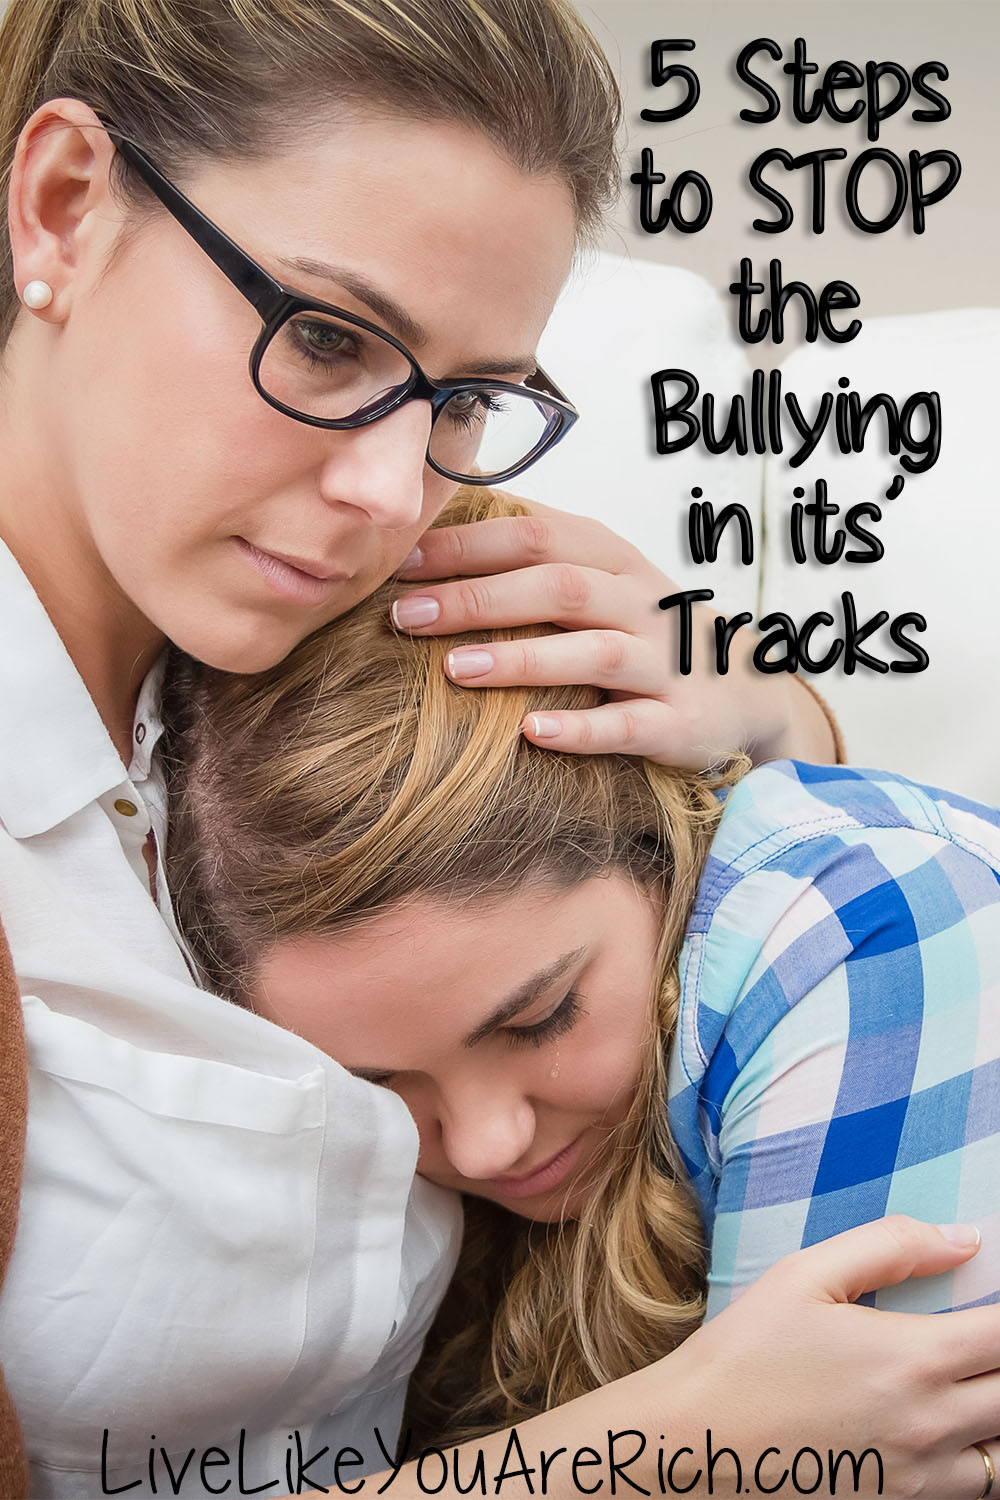 Ever been bullied or been a bully yourself? Well, I've been the victim of bullying and I've also been the bully. I've learned about both sides. So I thought I'd share with you these 5 steps to stop the bullying in its tracks. #stopbullying #bullying